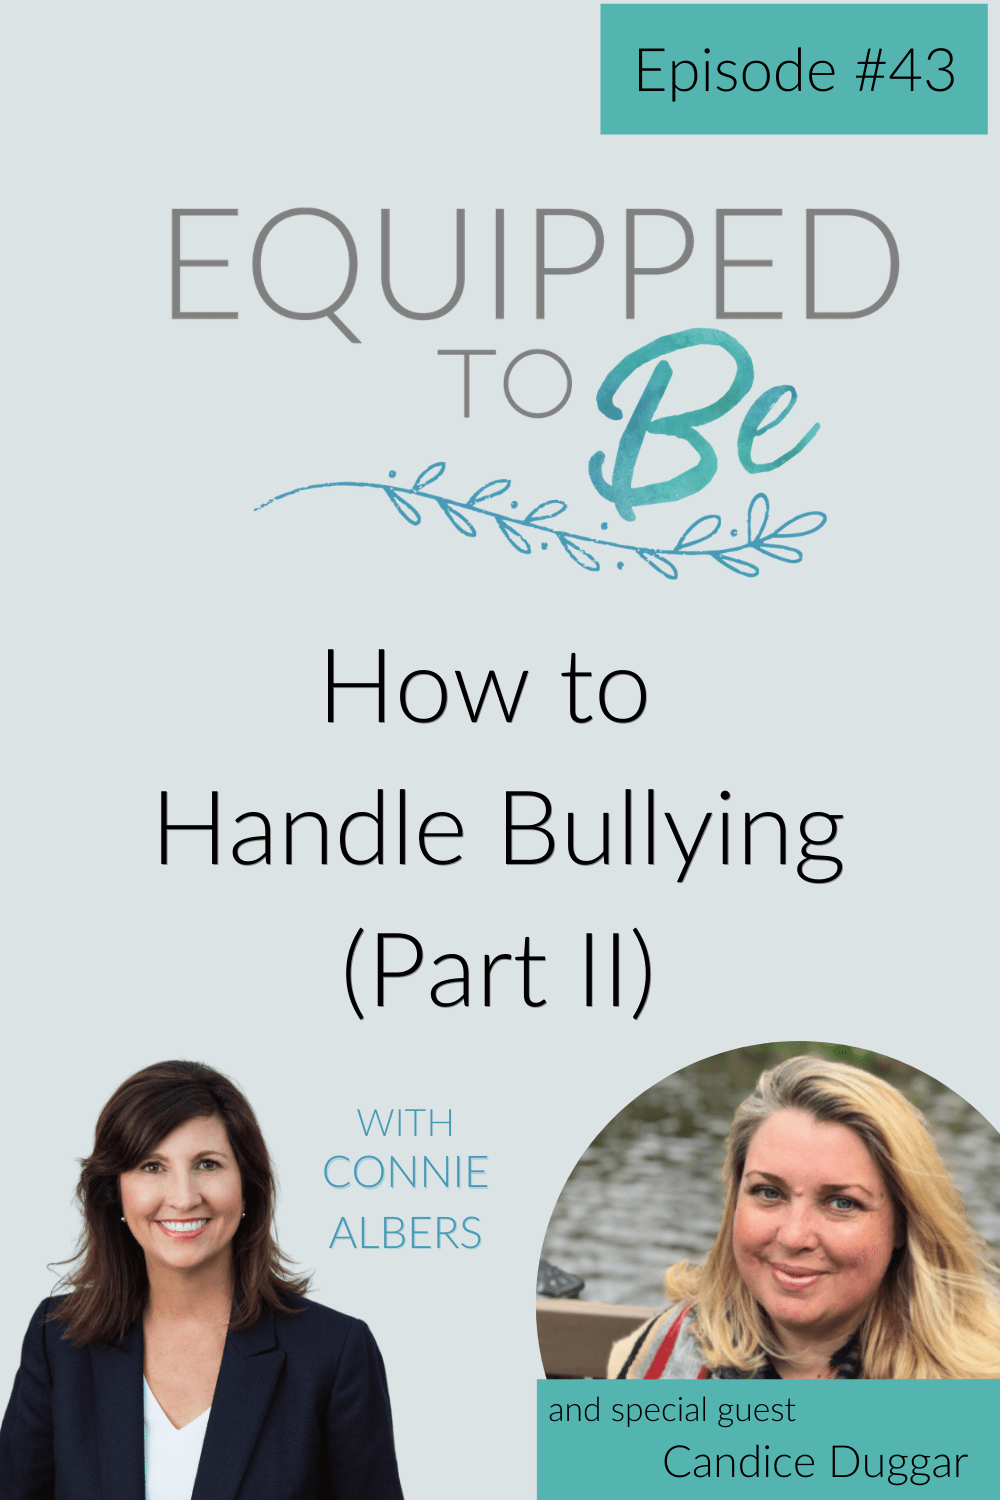 How to Handle Bullying with Candice Duggar (Part II) - ETB #43